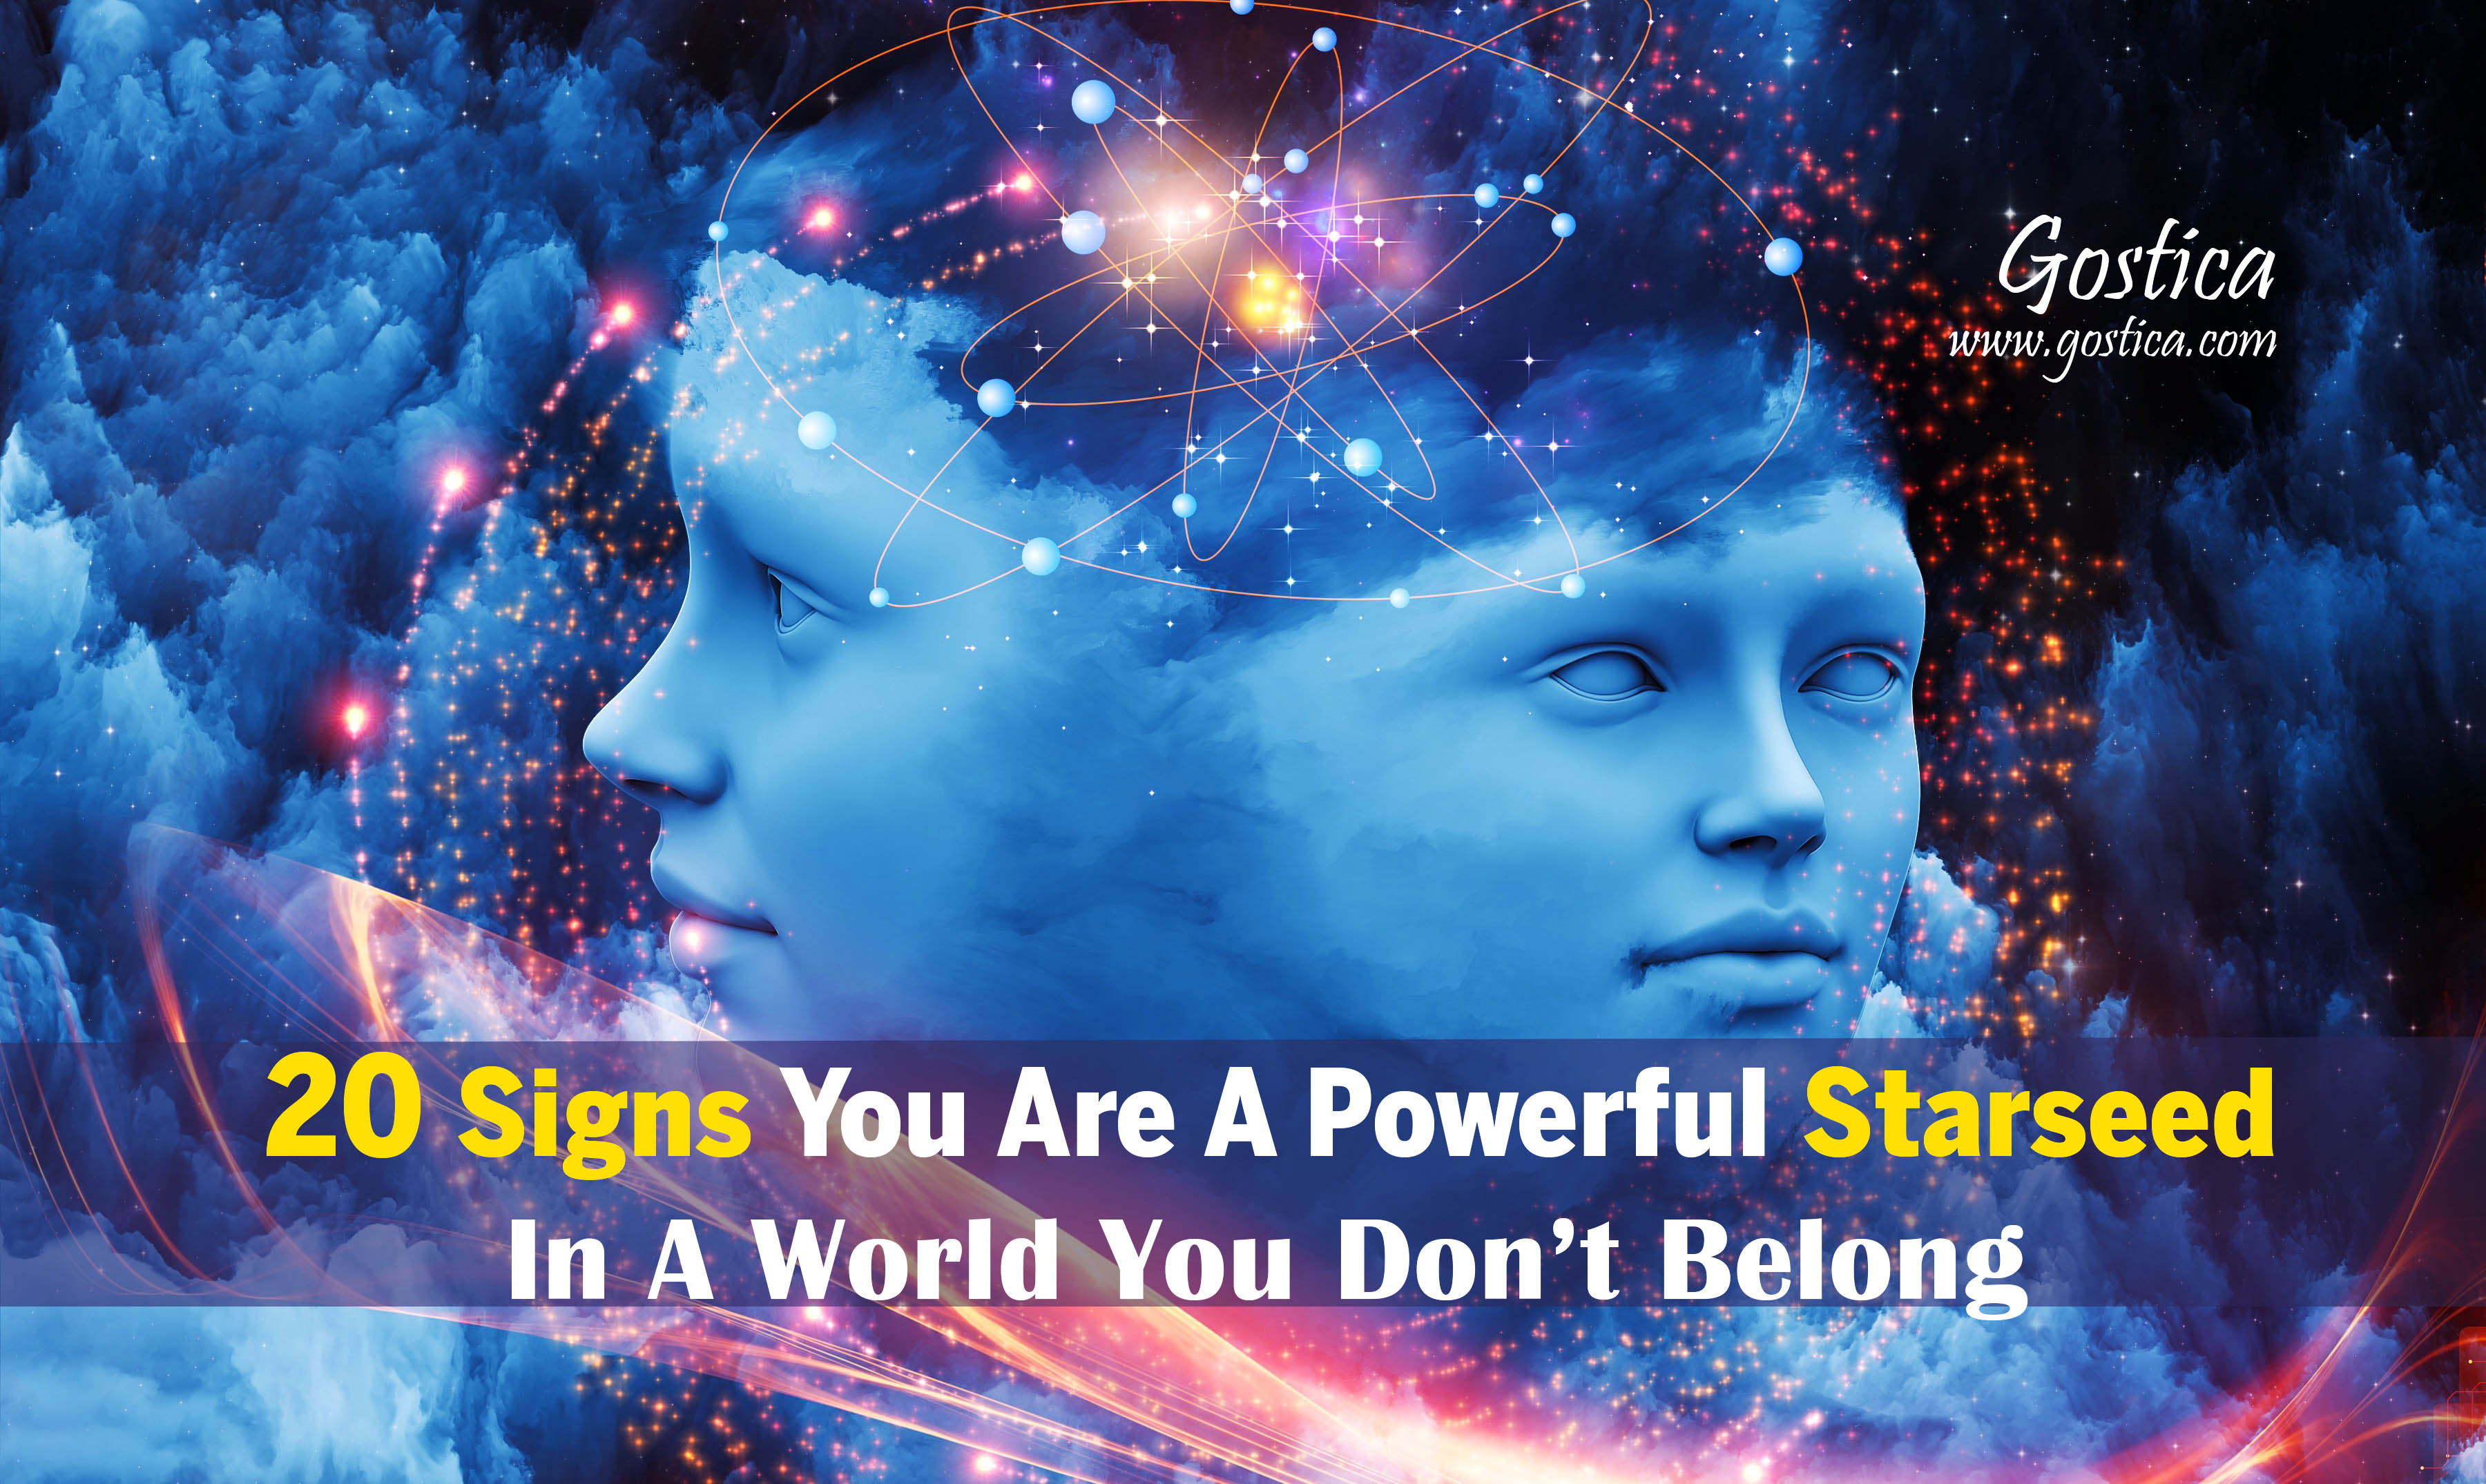 20-Signs-You-Are-A-Powerful-Starseed-In-A-World-You-Don't-Belong-.jpg